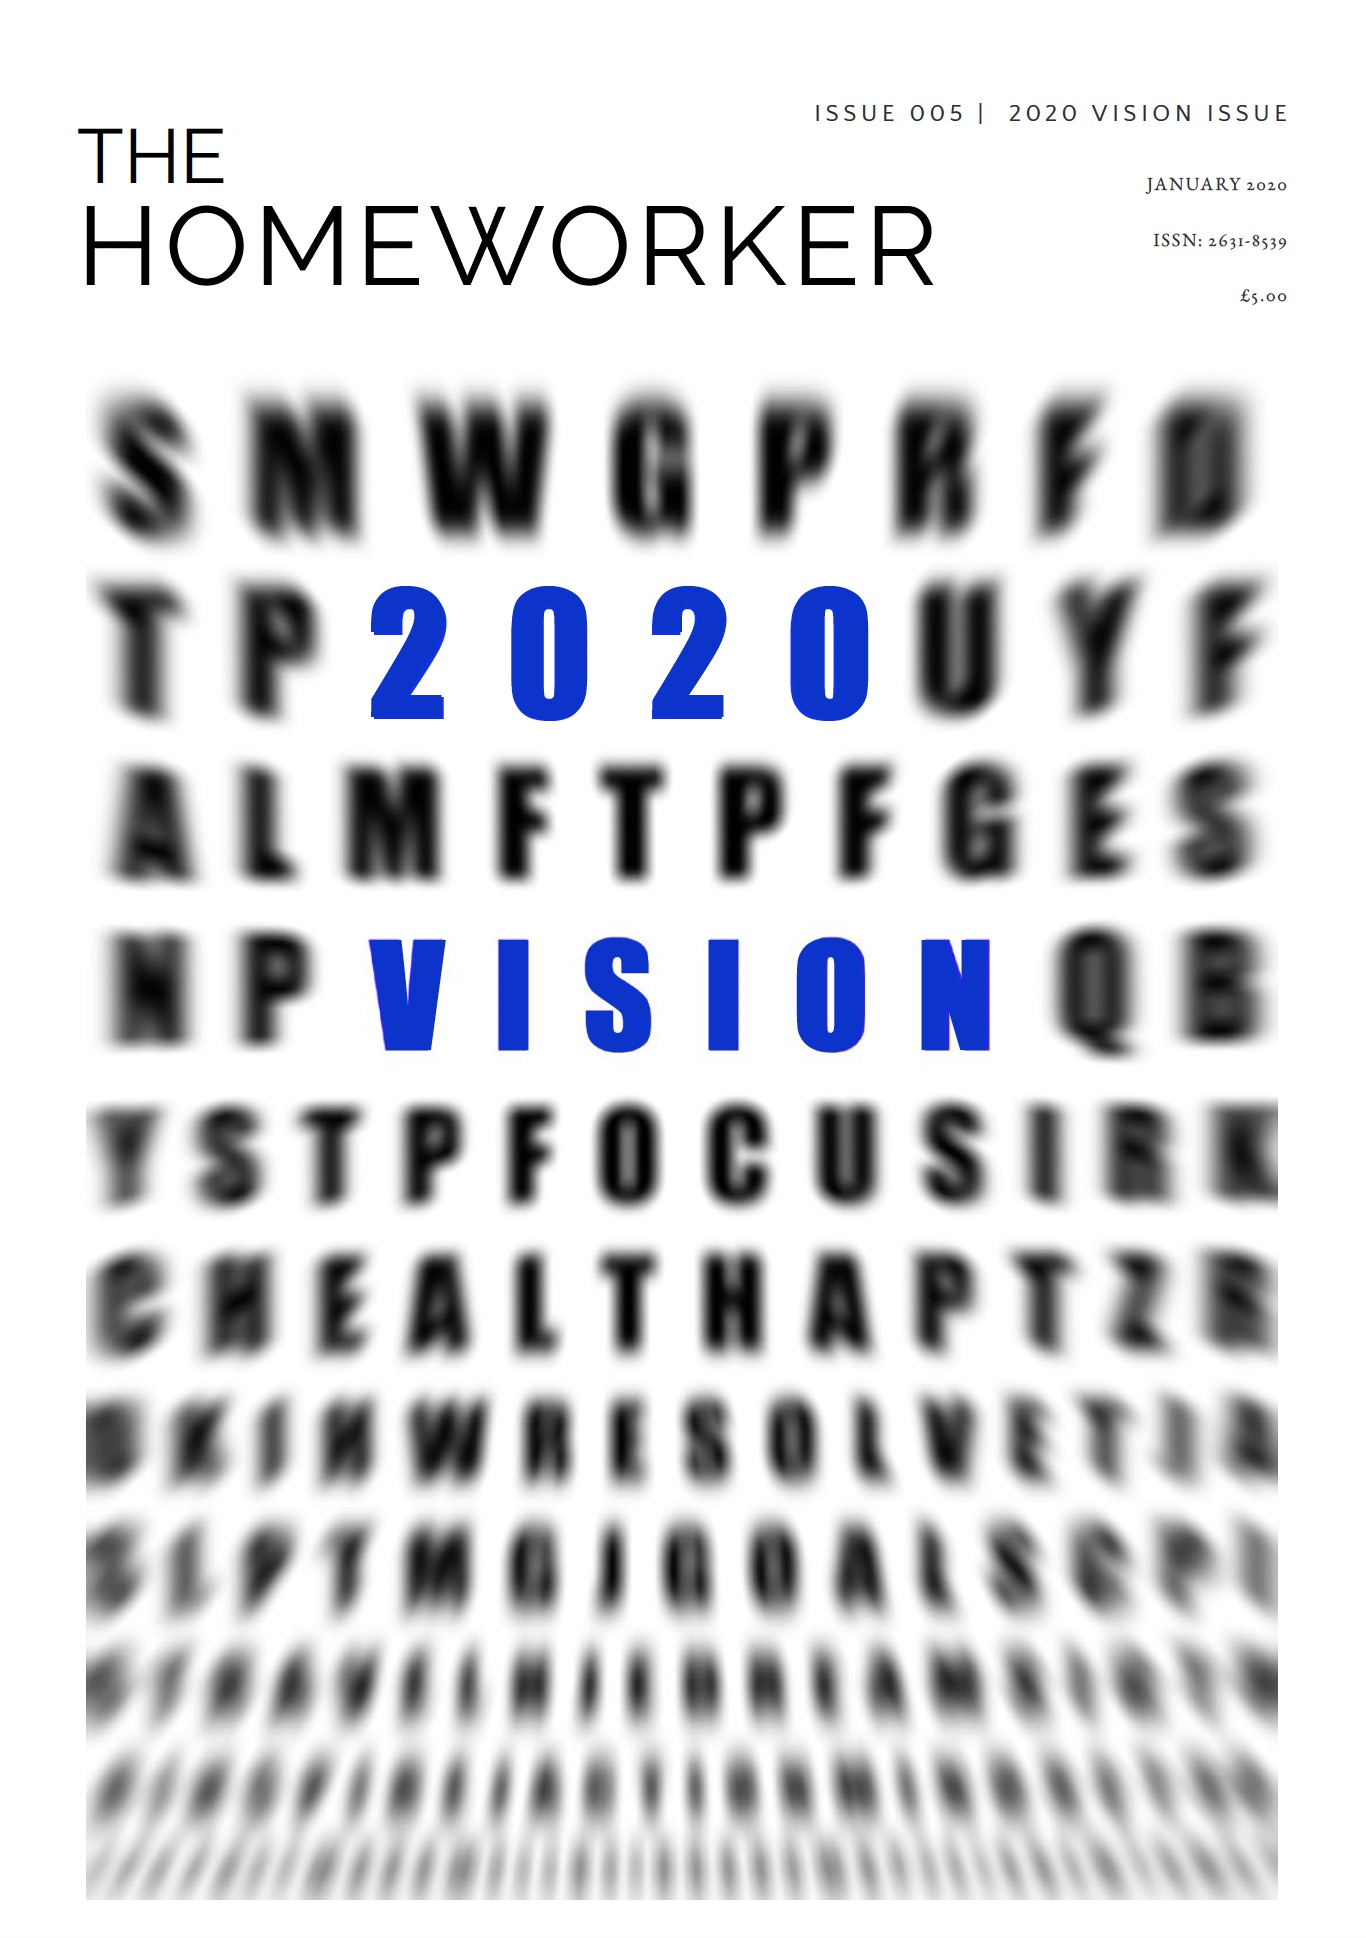 the homeworker magazine, issue 5, 2020 vision